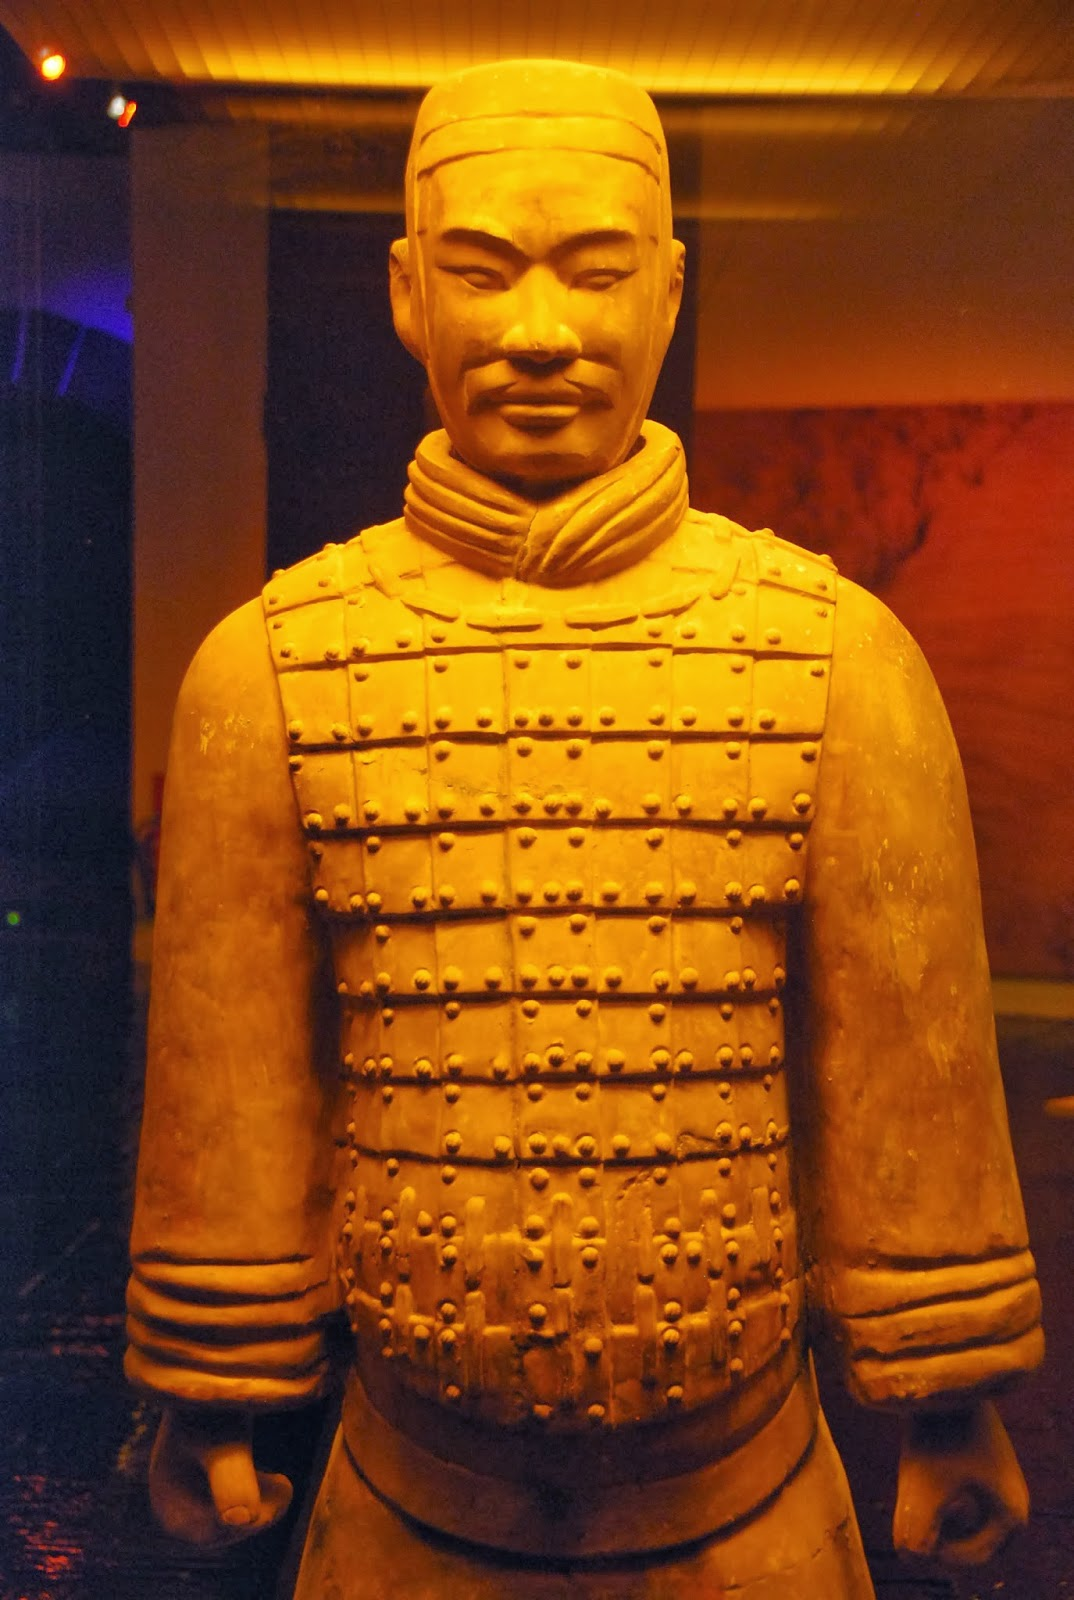 Terracotta Warriors Body Terracotta Warriors Full Body